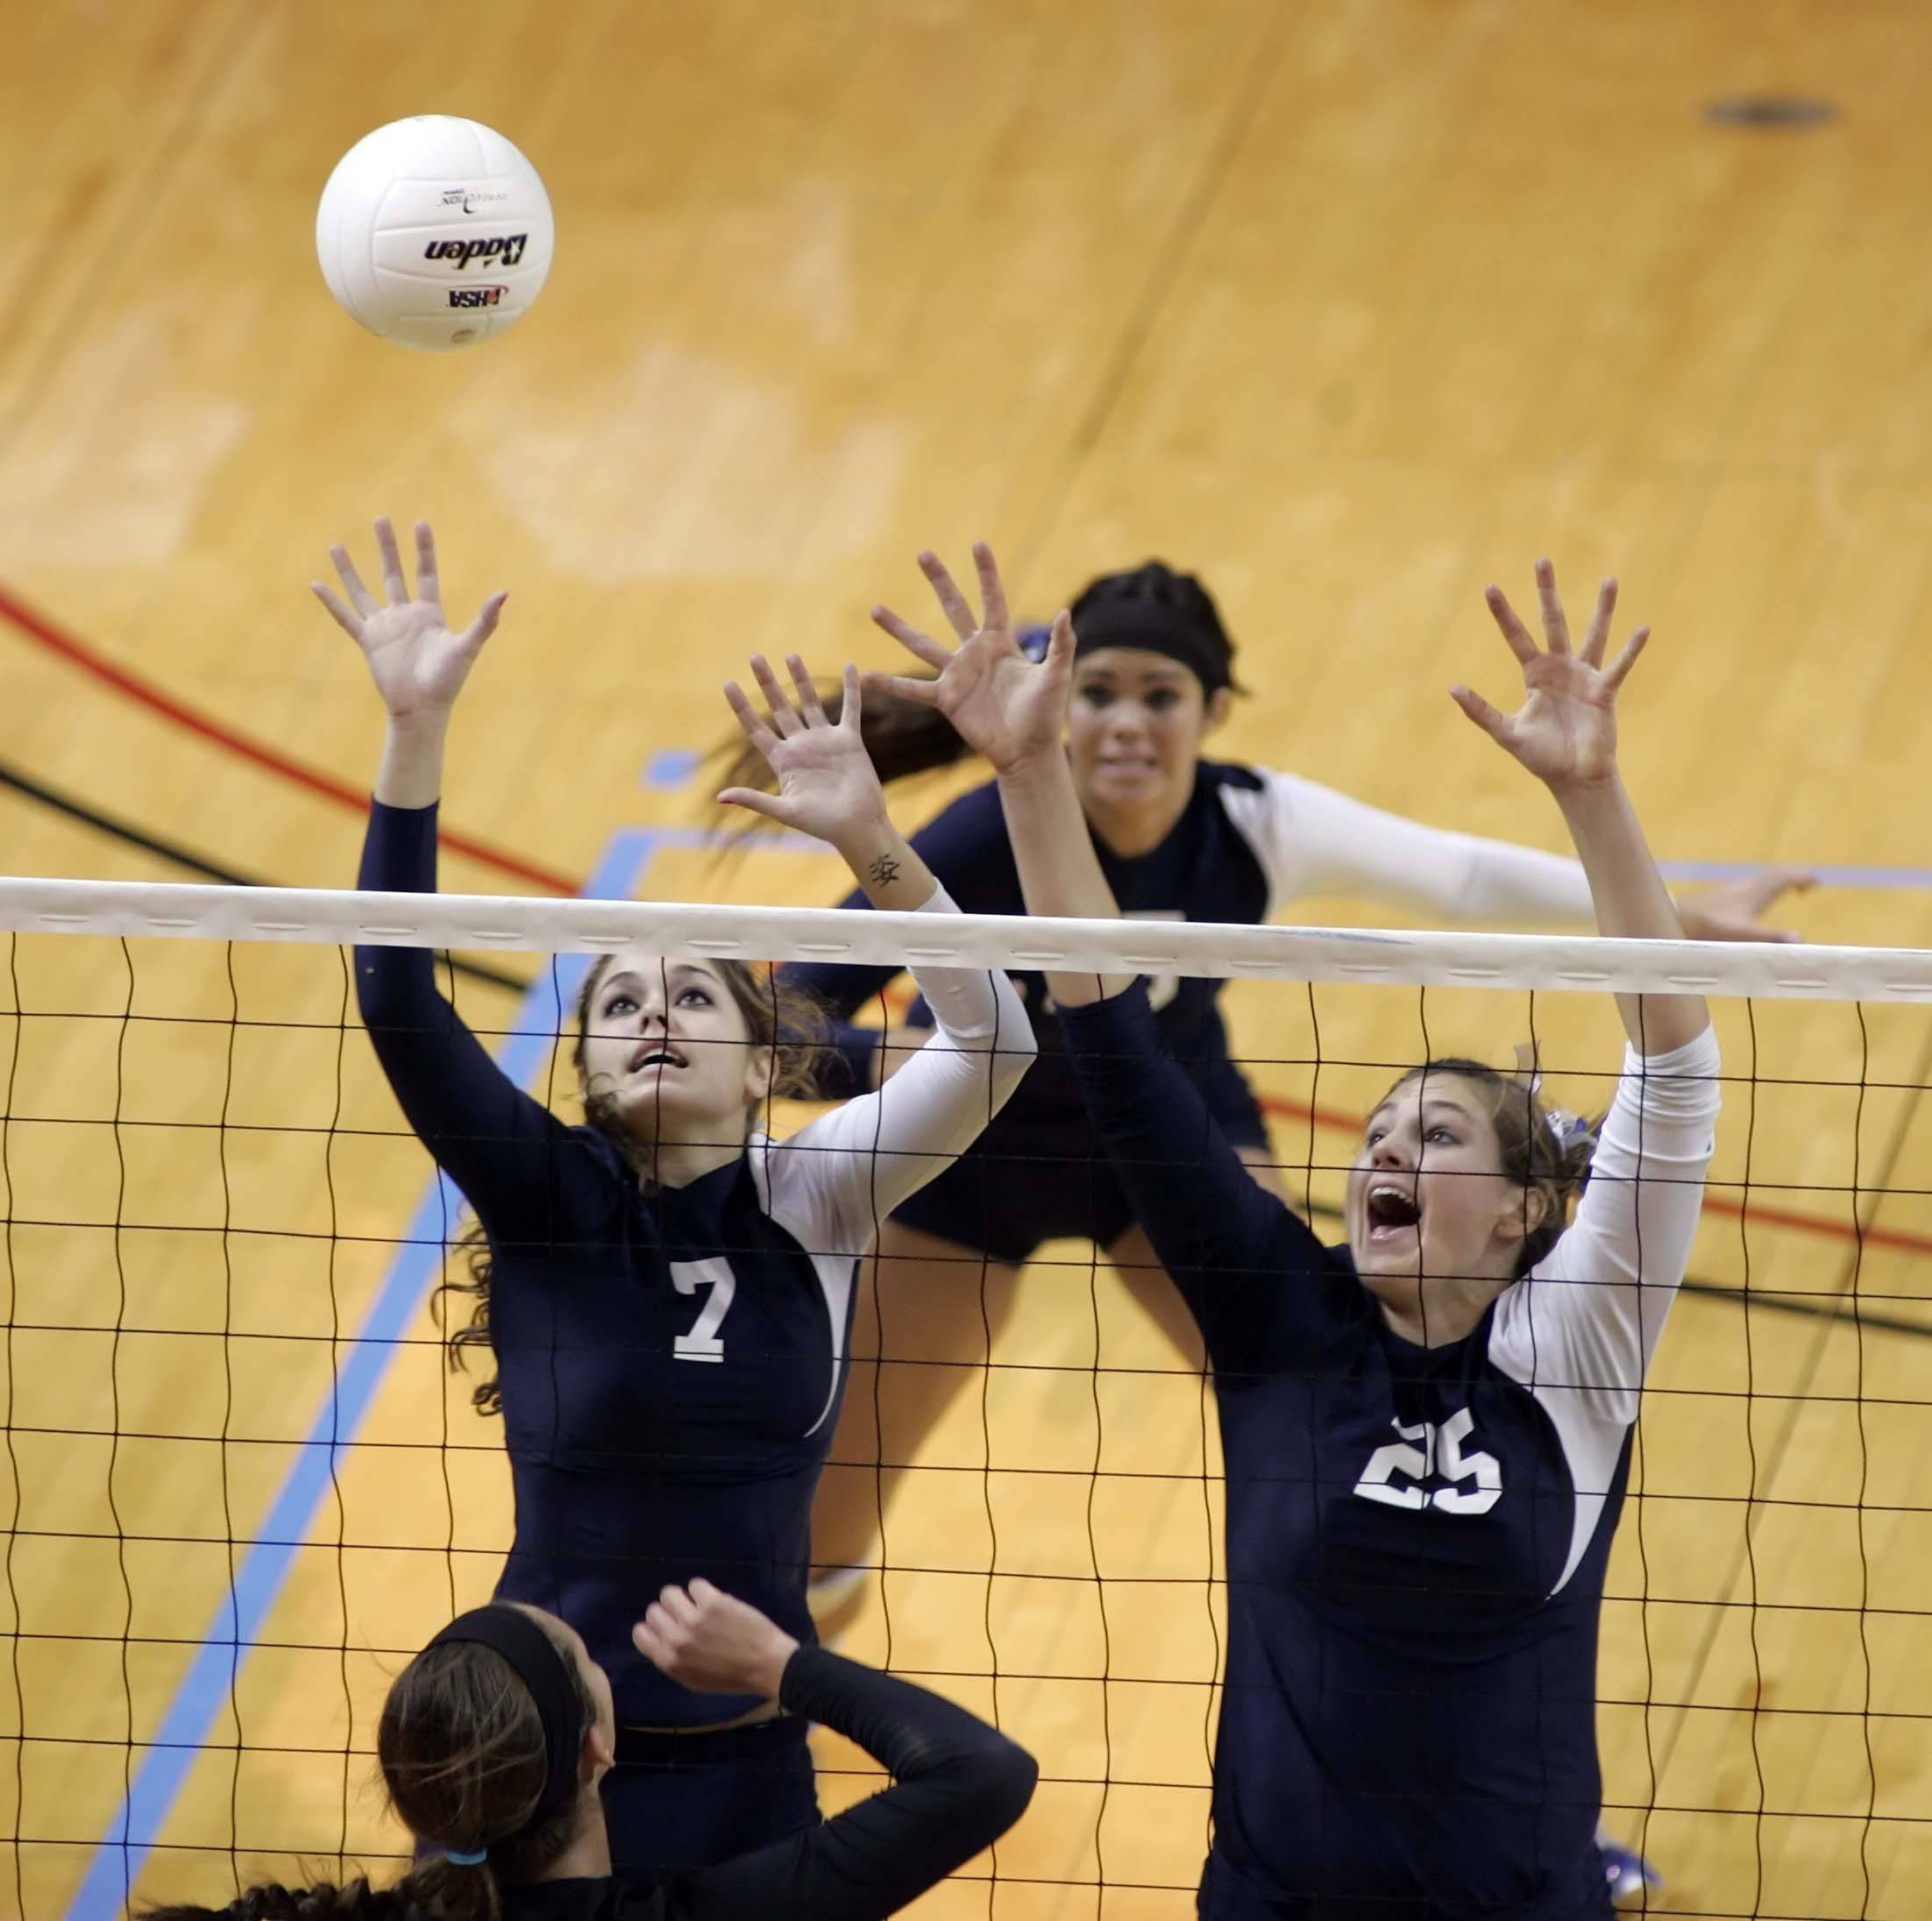 Cary-Grove outside hitter Allison Whimpey, 7, and Cary-Grove middle blocker Ashley Rosch, 25, attempt a block during the Cary-Grove vs Edwardsville in the IHSA Class 4A State semi-final match Friday, November 12, 2010 at Redbird Arena in Normal.